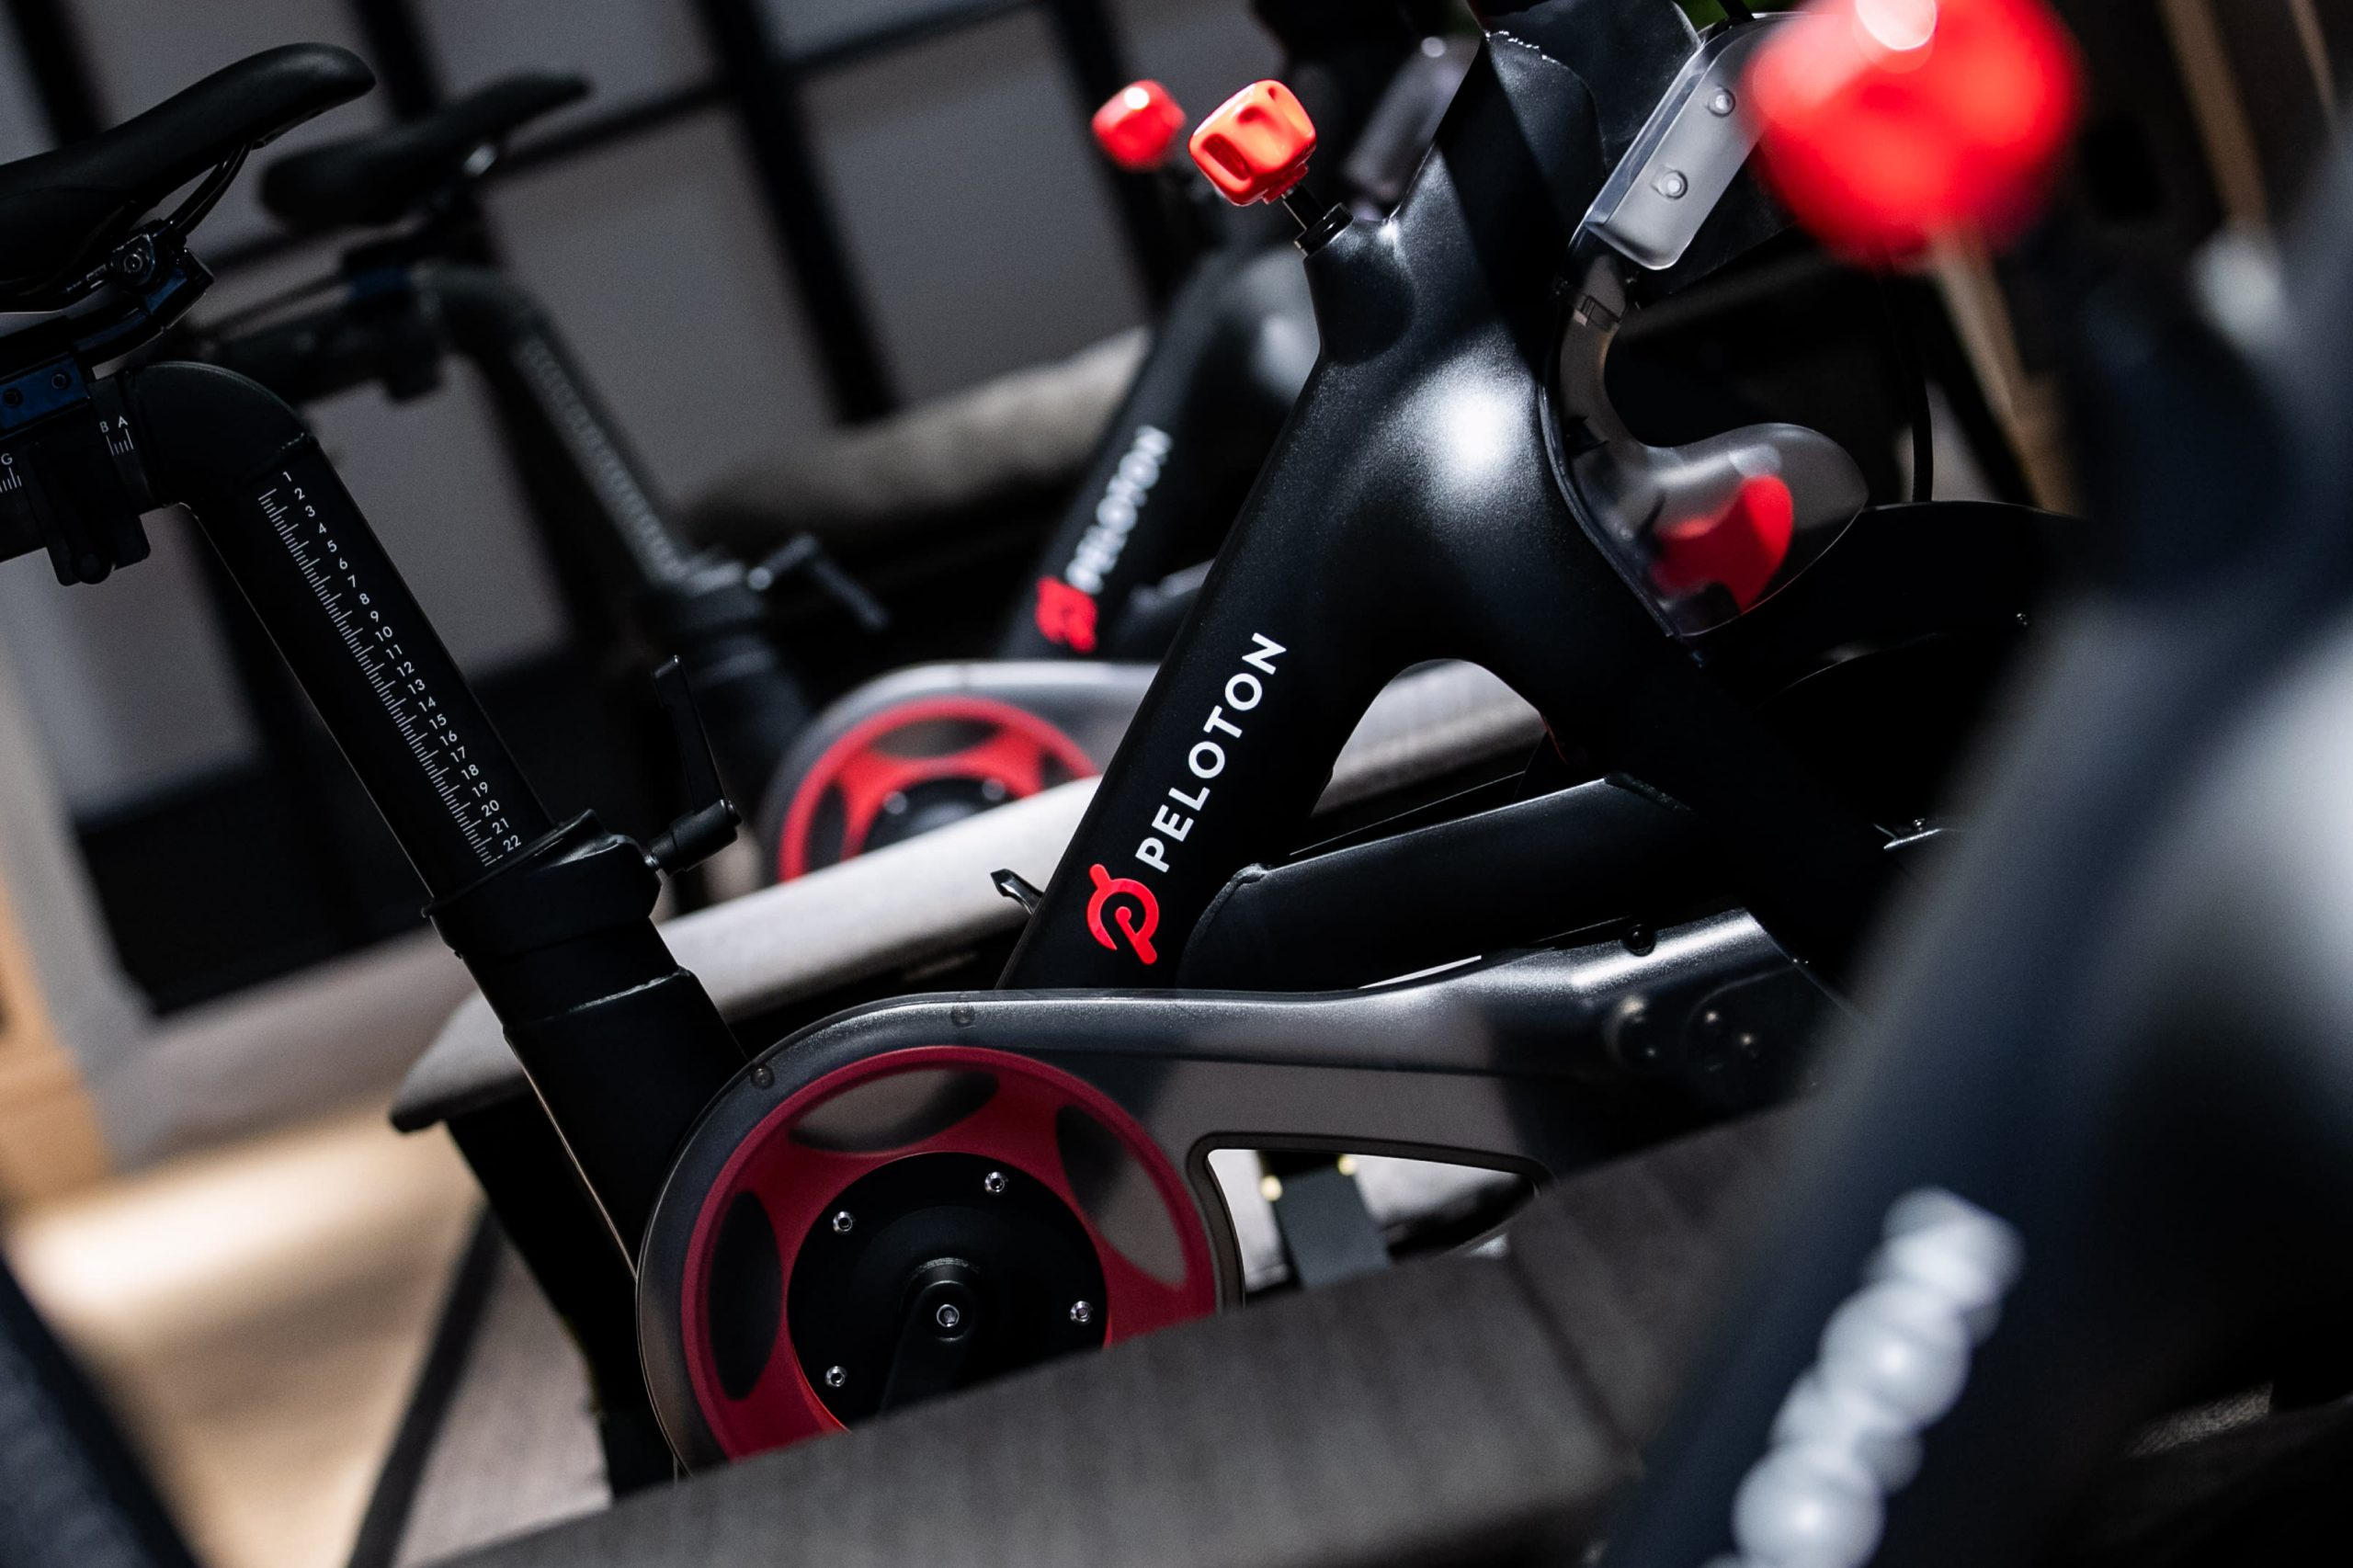 Peloton (PTON) studies fiscal Q1 2021 earnings, gross sales beat